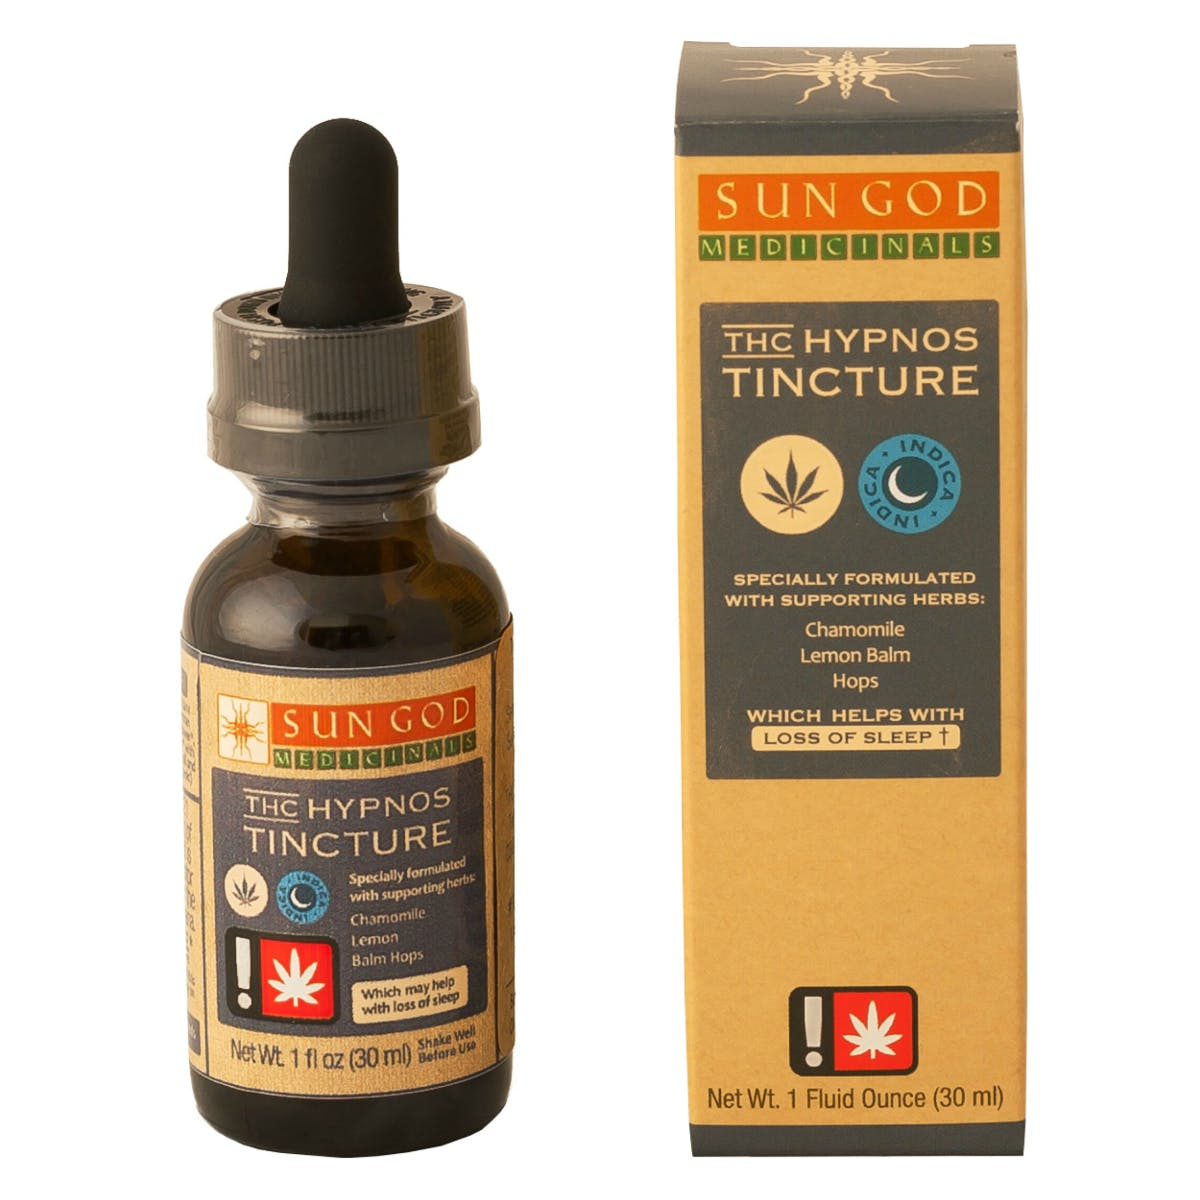 Hypnos Herbal Infused THC Tincture